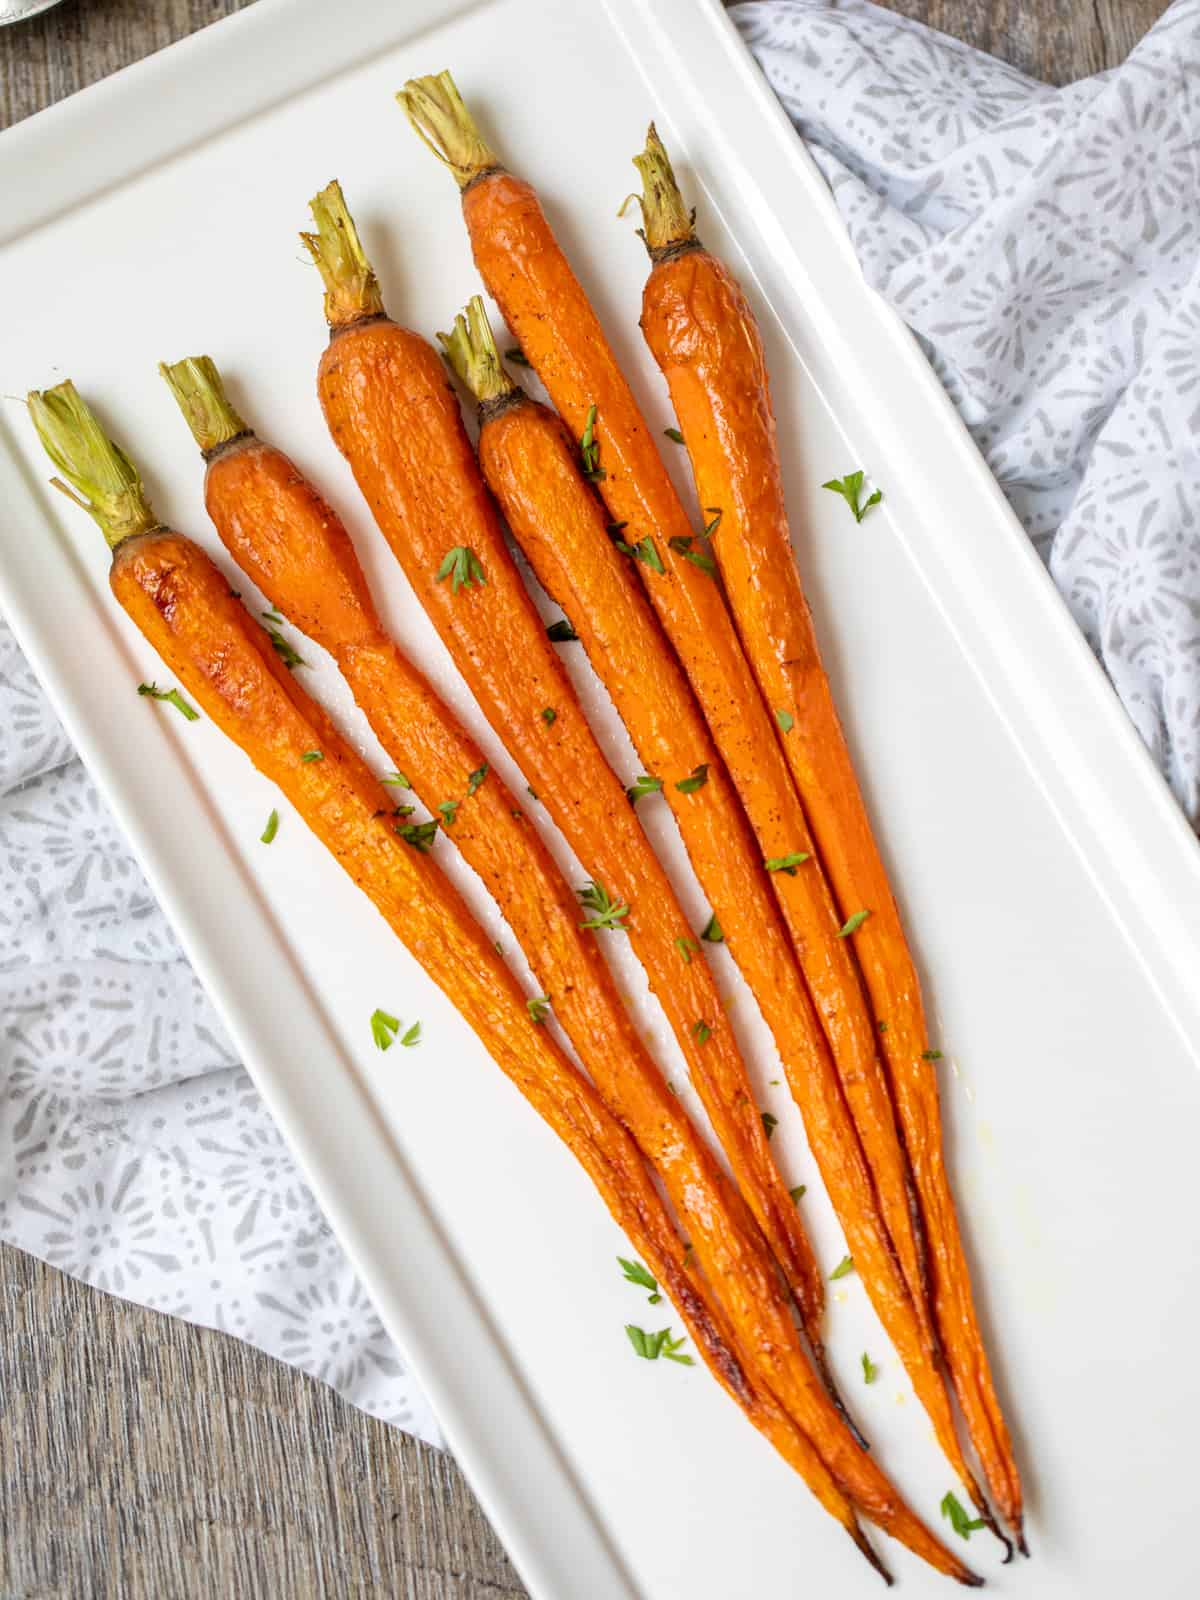 White serving dish with large roasted carrots.